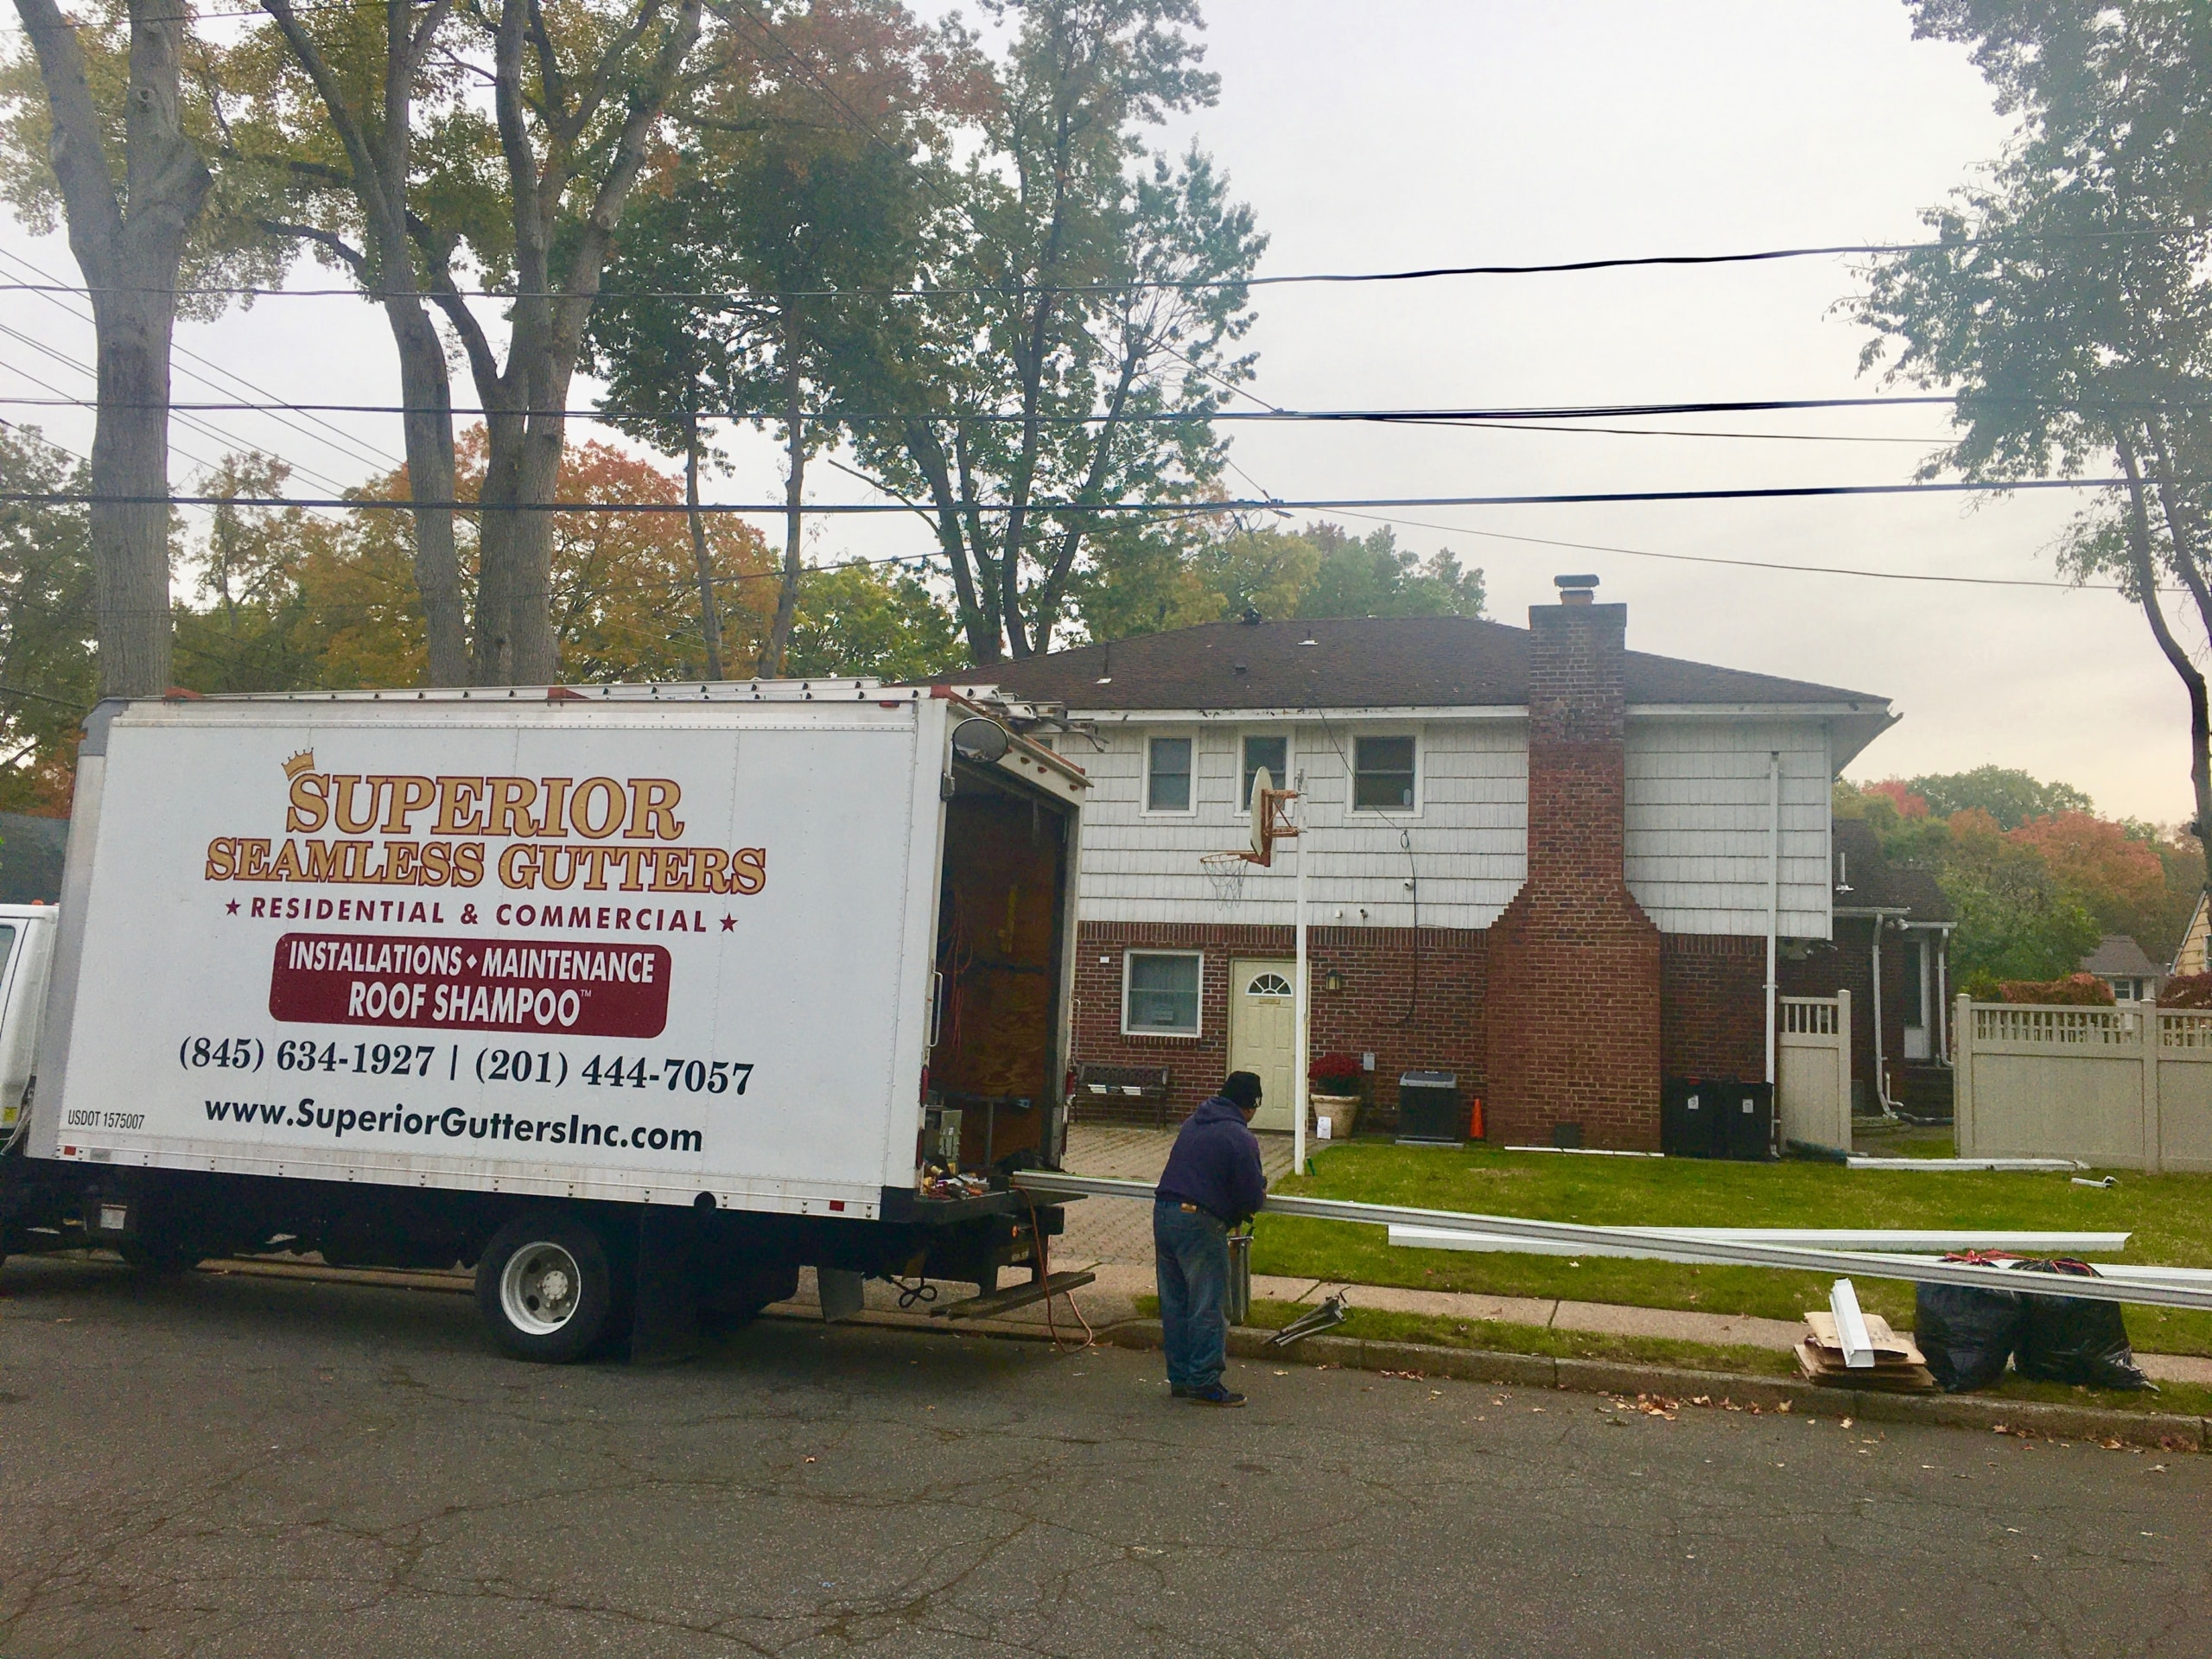 gutter installation in new milford, nj, bergen county by superior seamless gutters